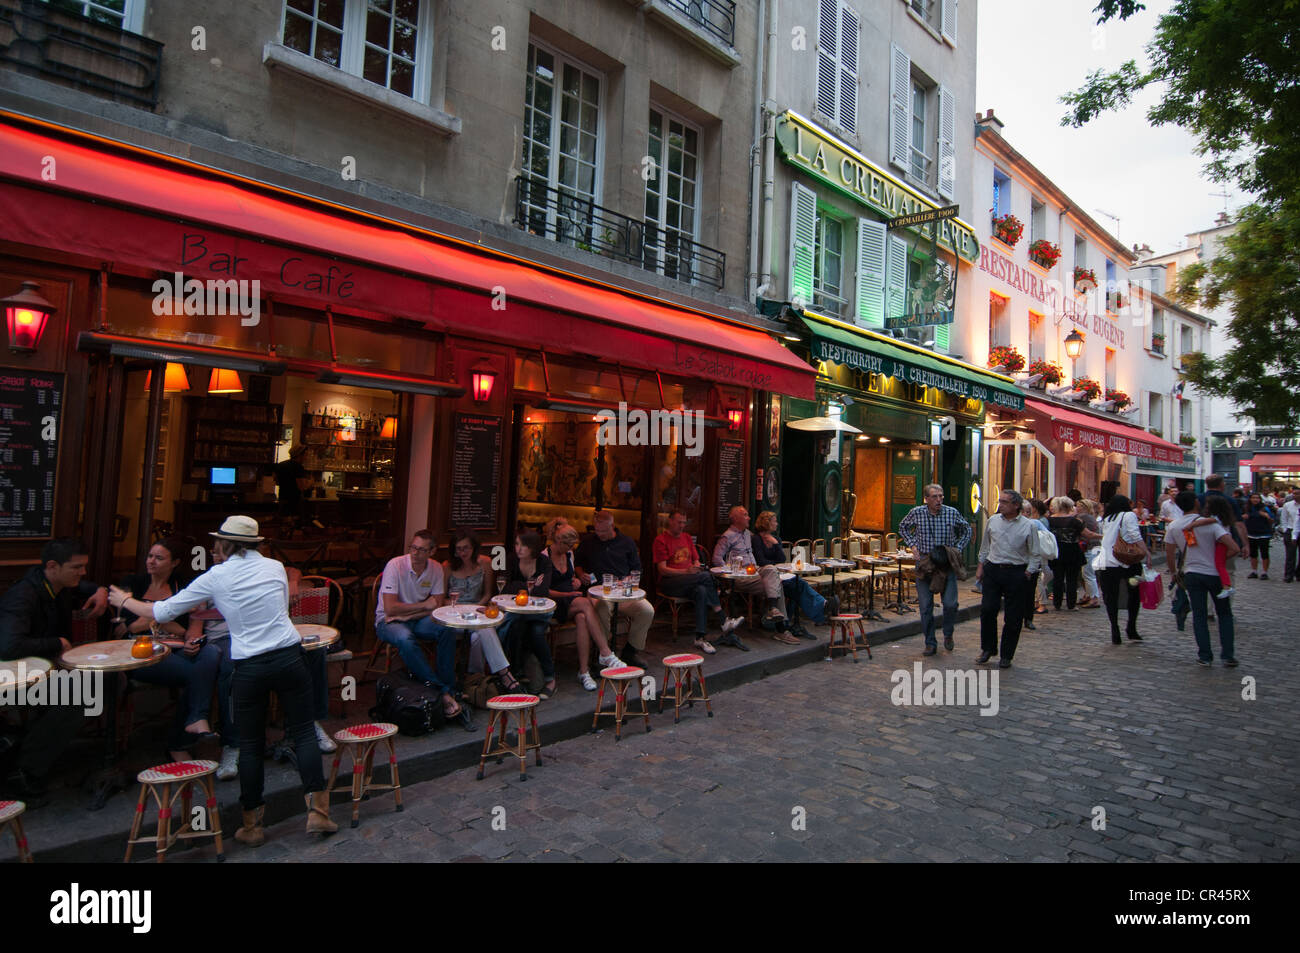 People In Street Restaurants In Montmartre Paris Stock Photo